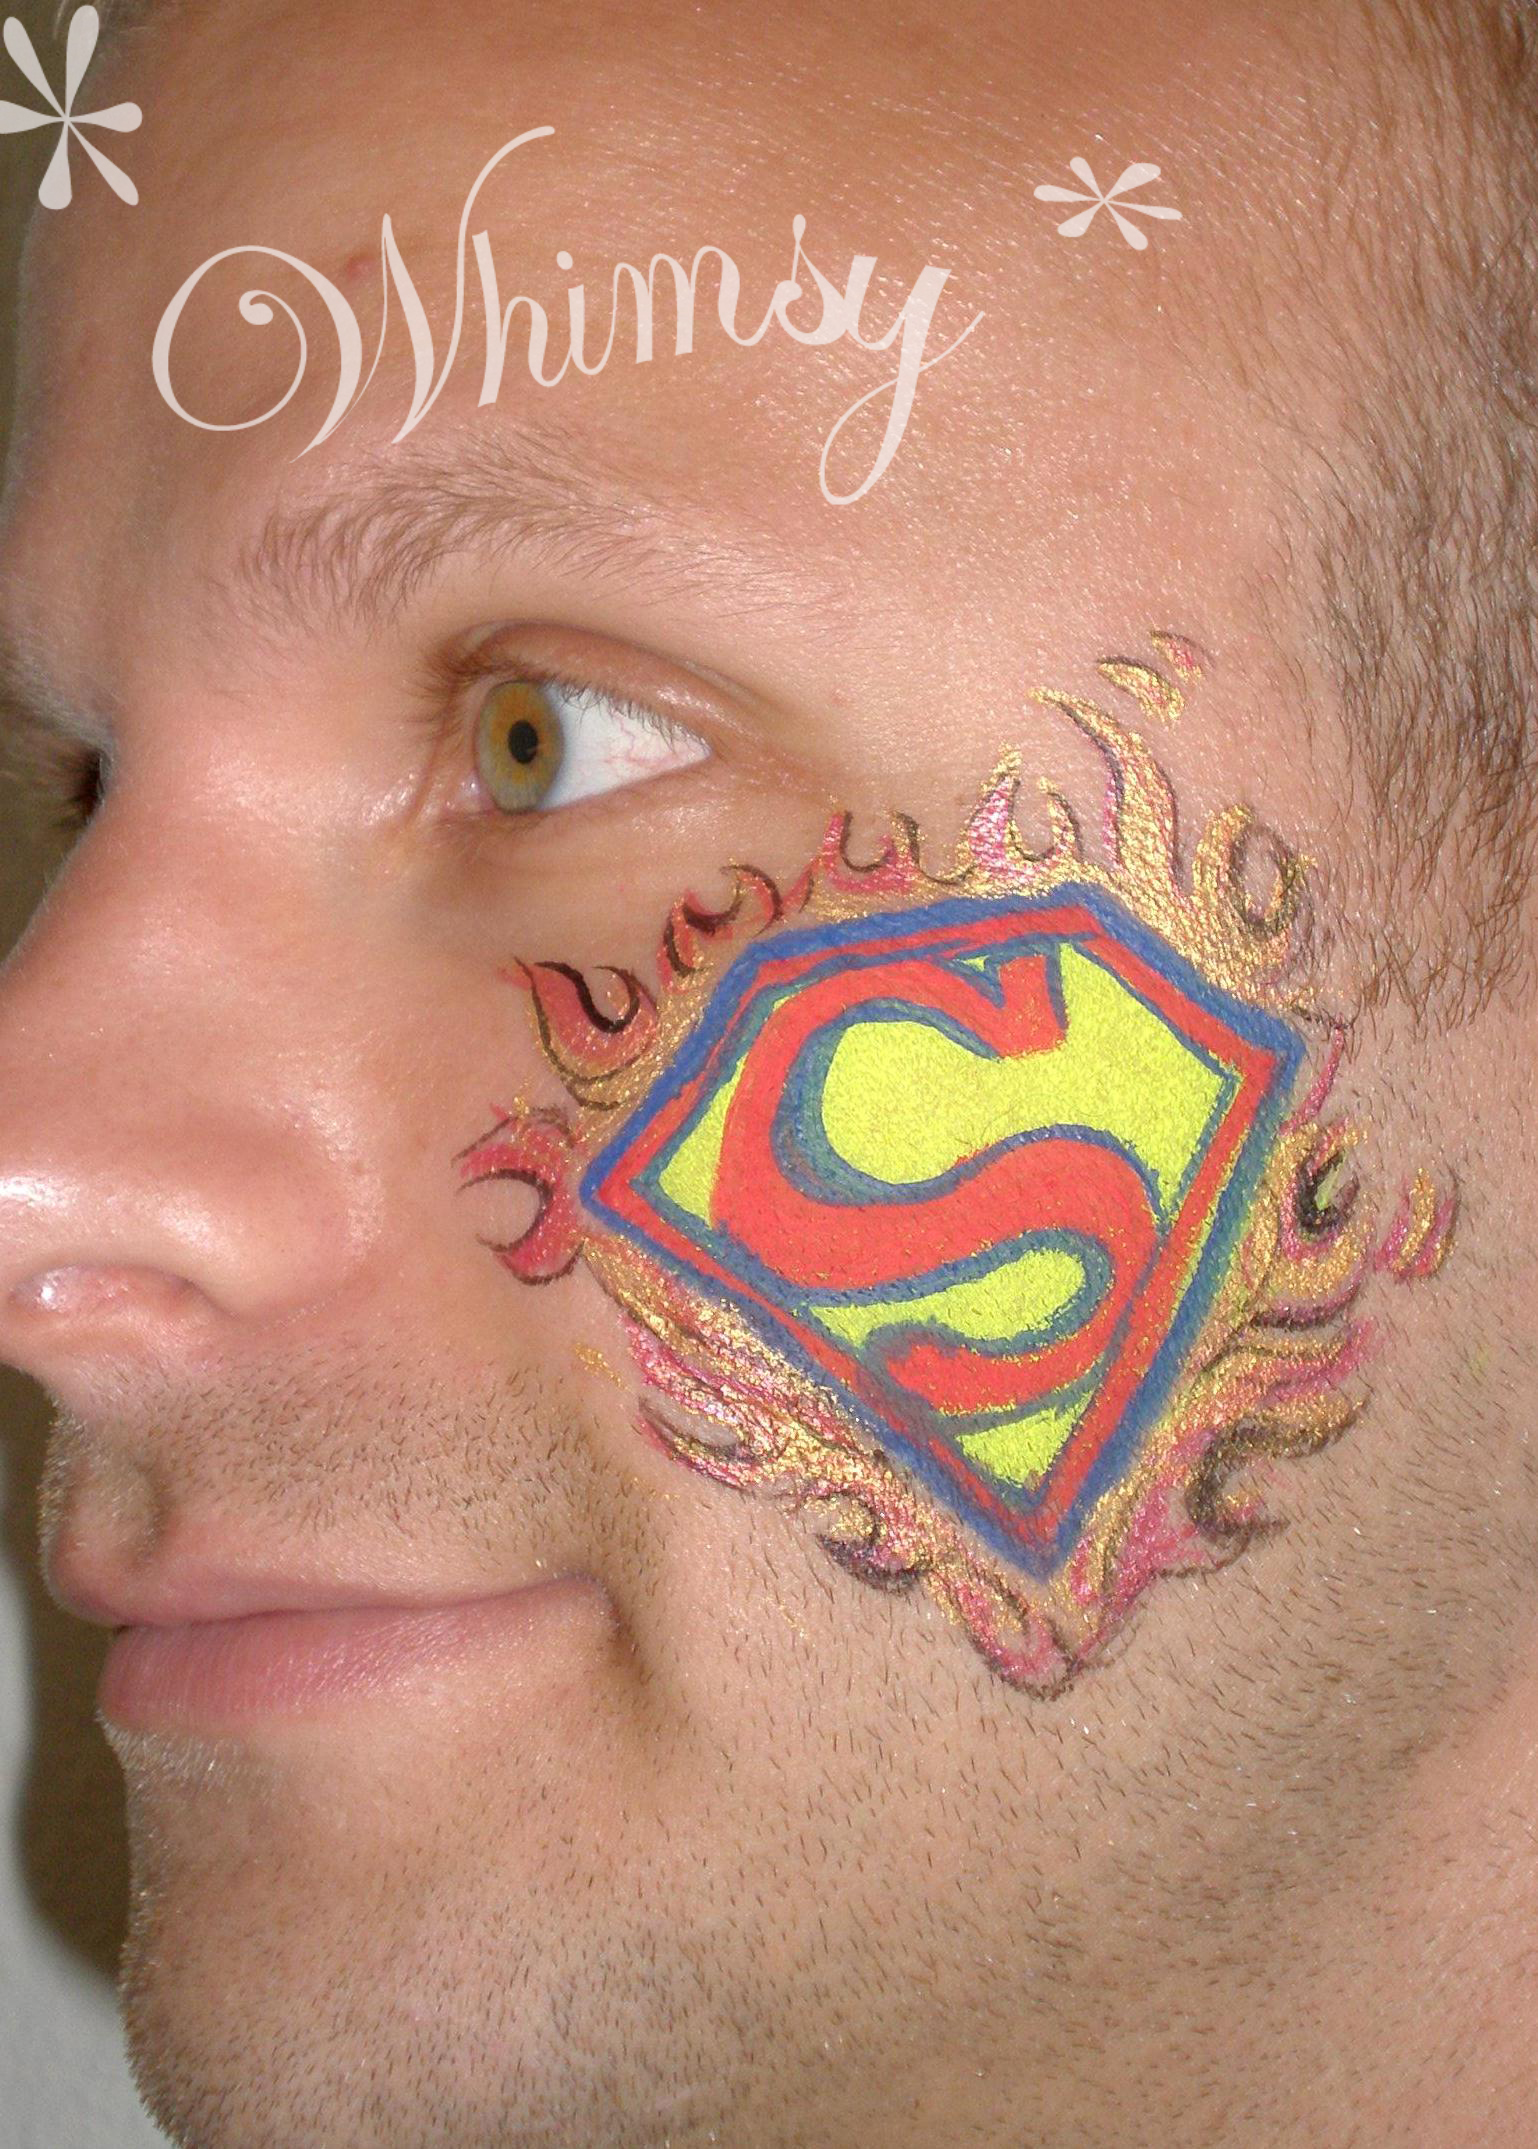 Superhero-superman.JPG